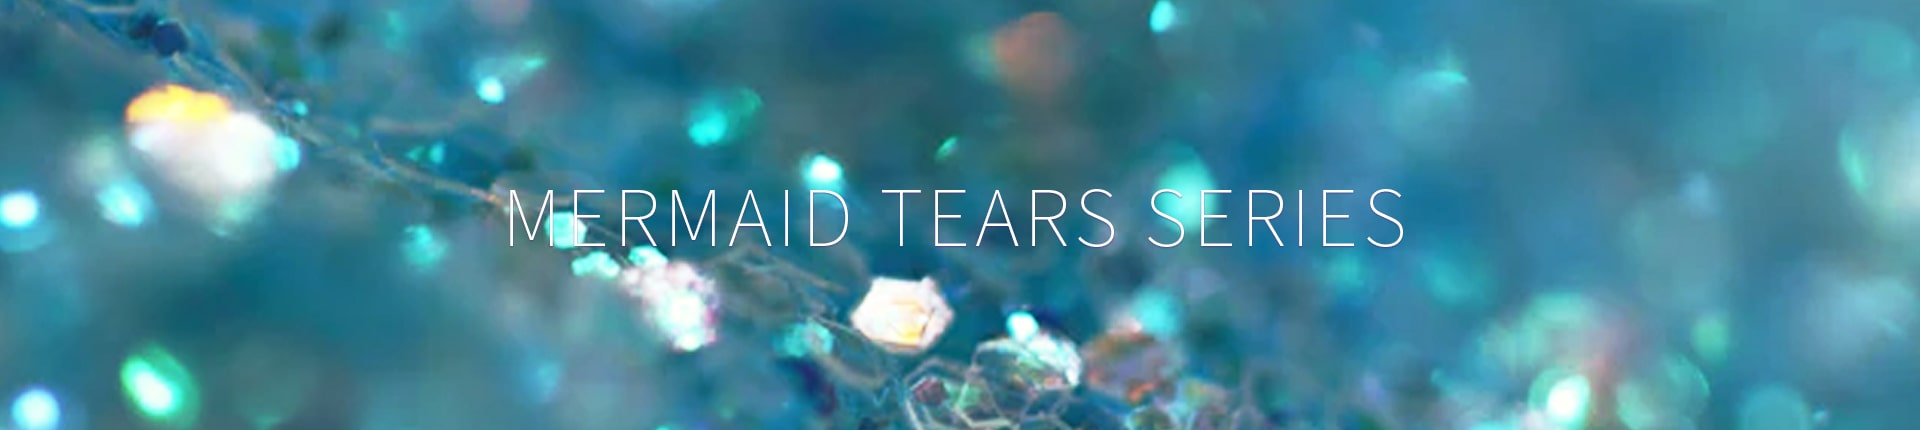 Mermaid Tears Contacts